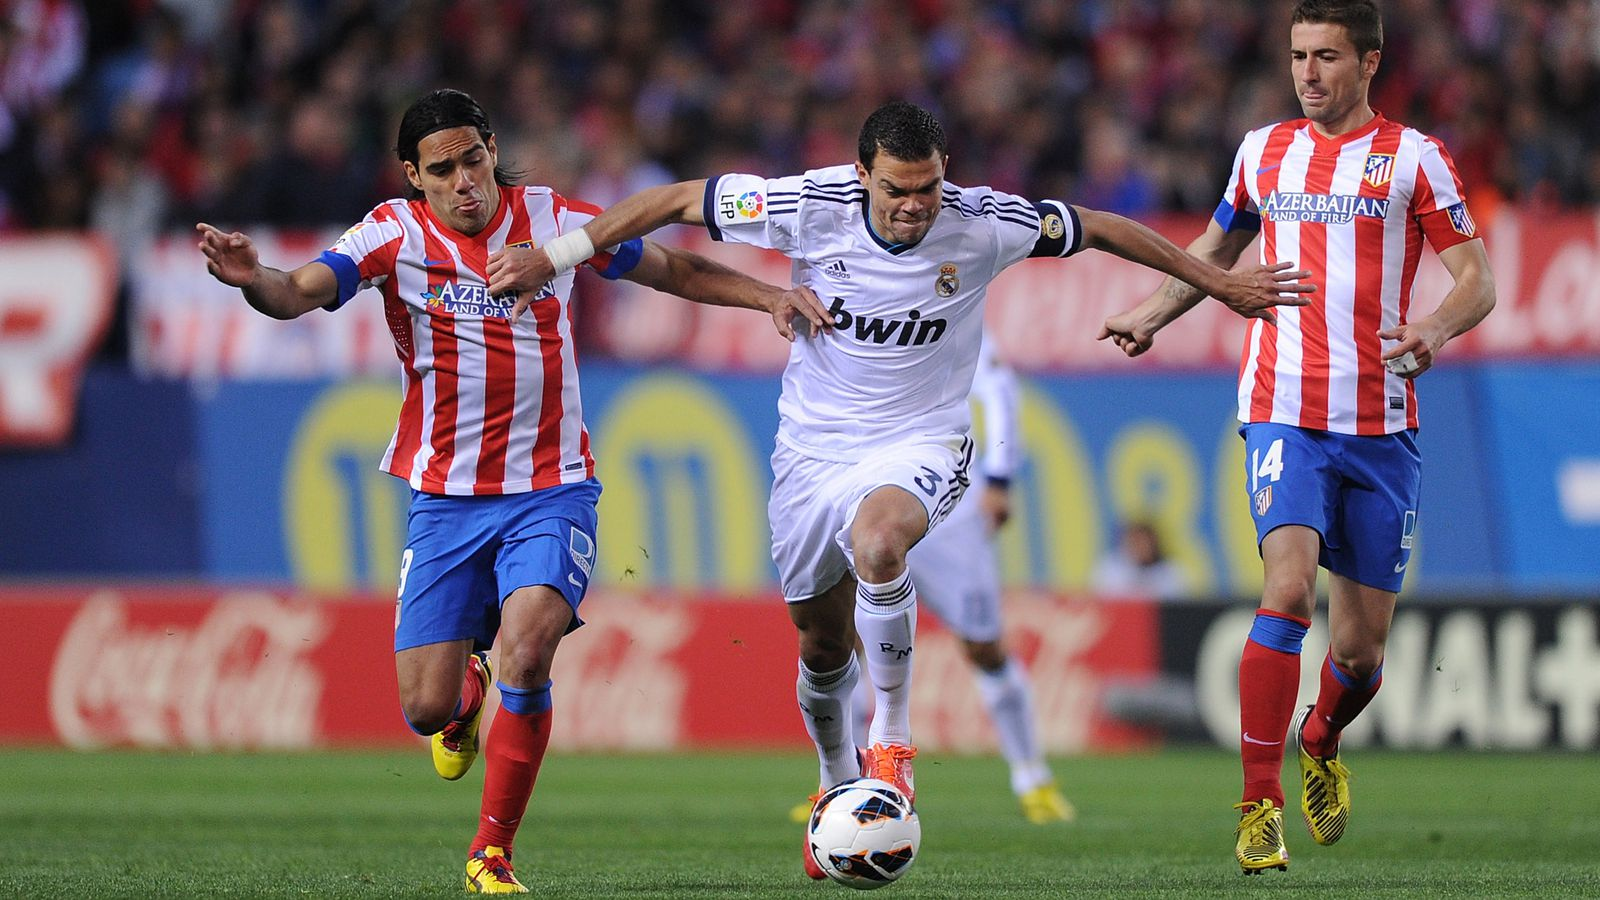 Real Madrid Gegen Atletico Madrid